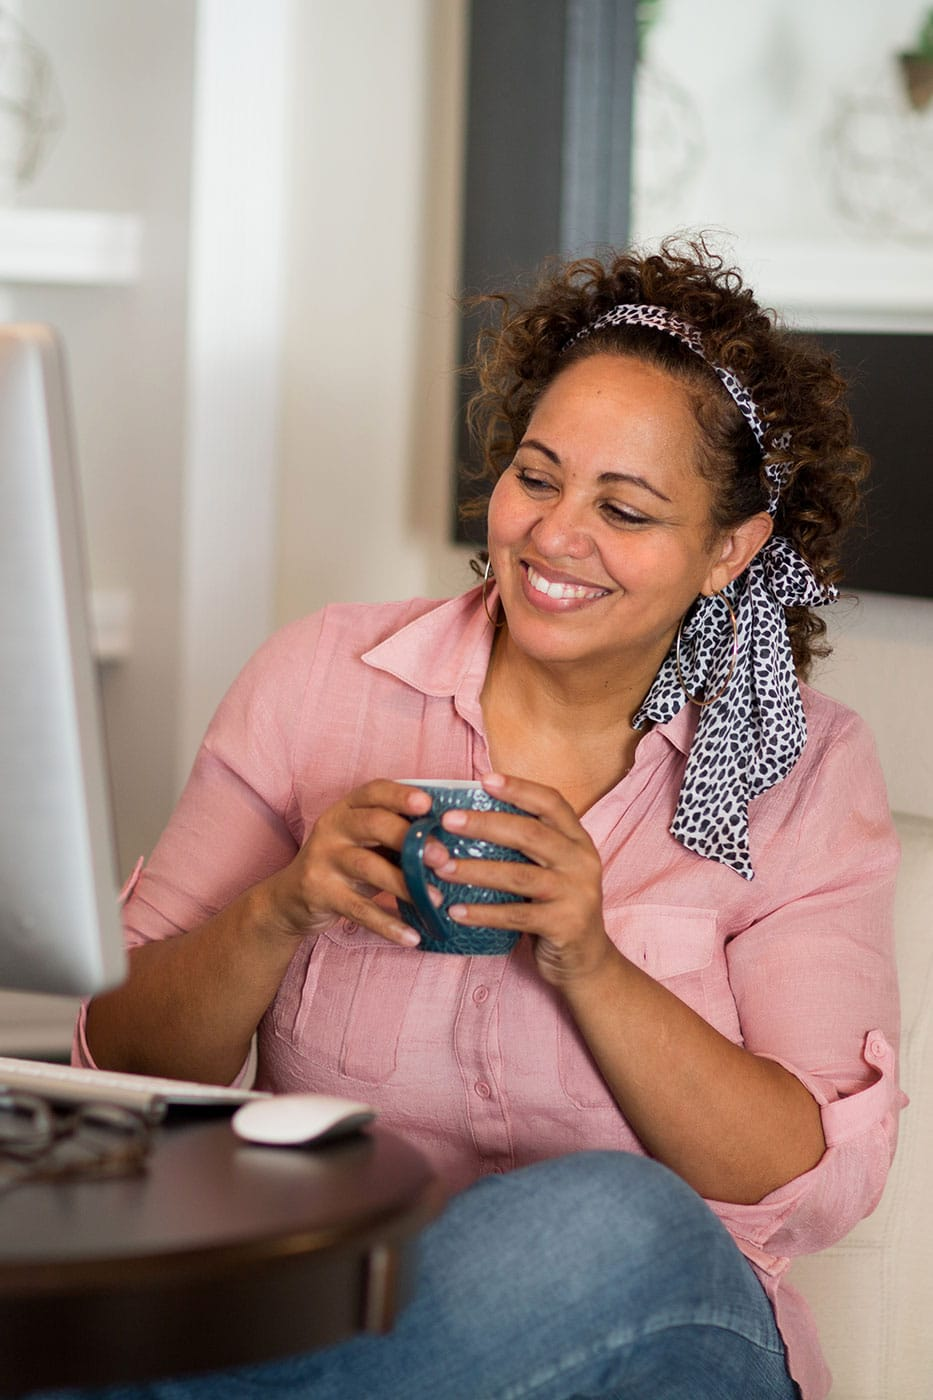 office woman drinks coffee at her desk